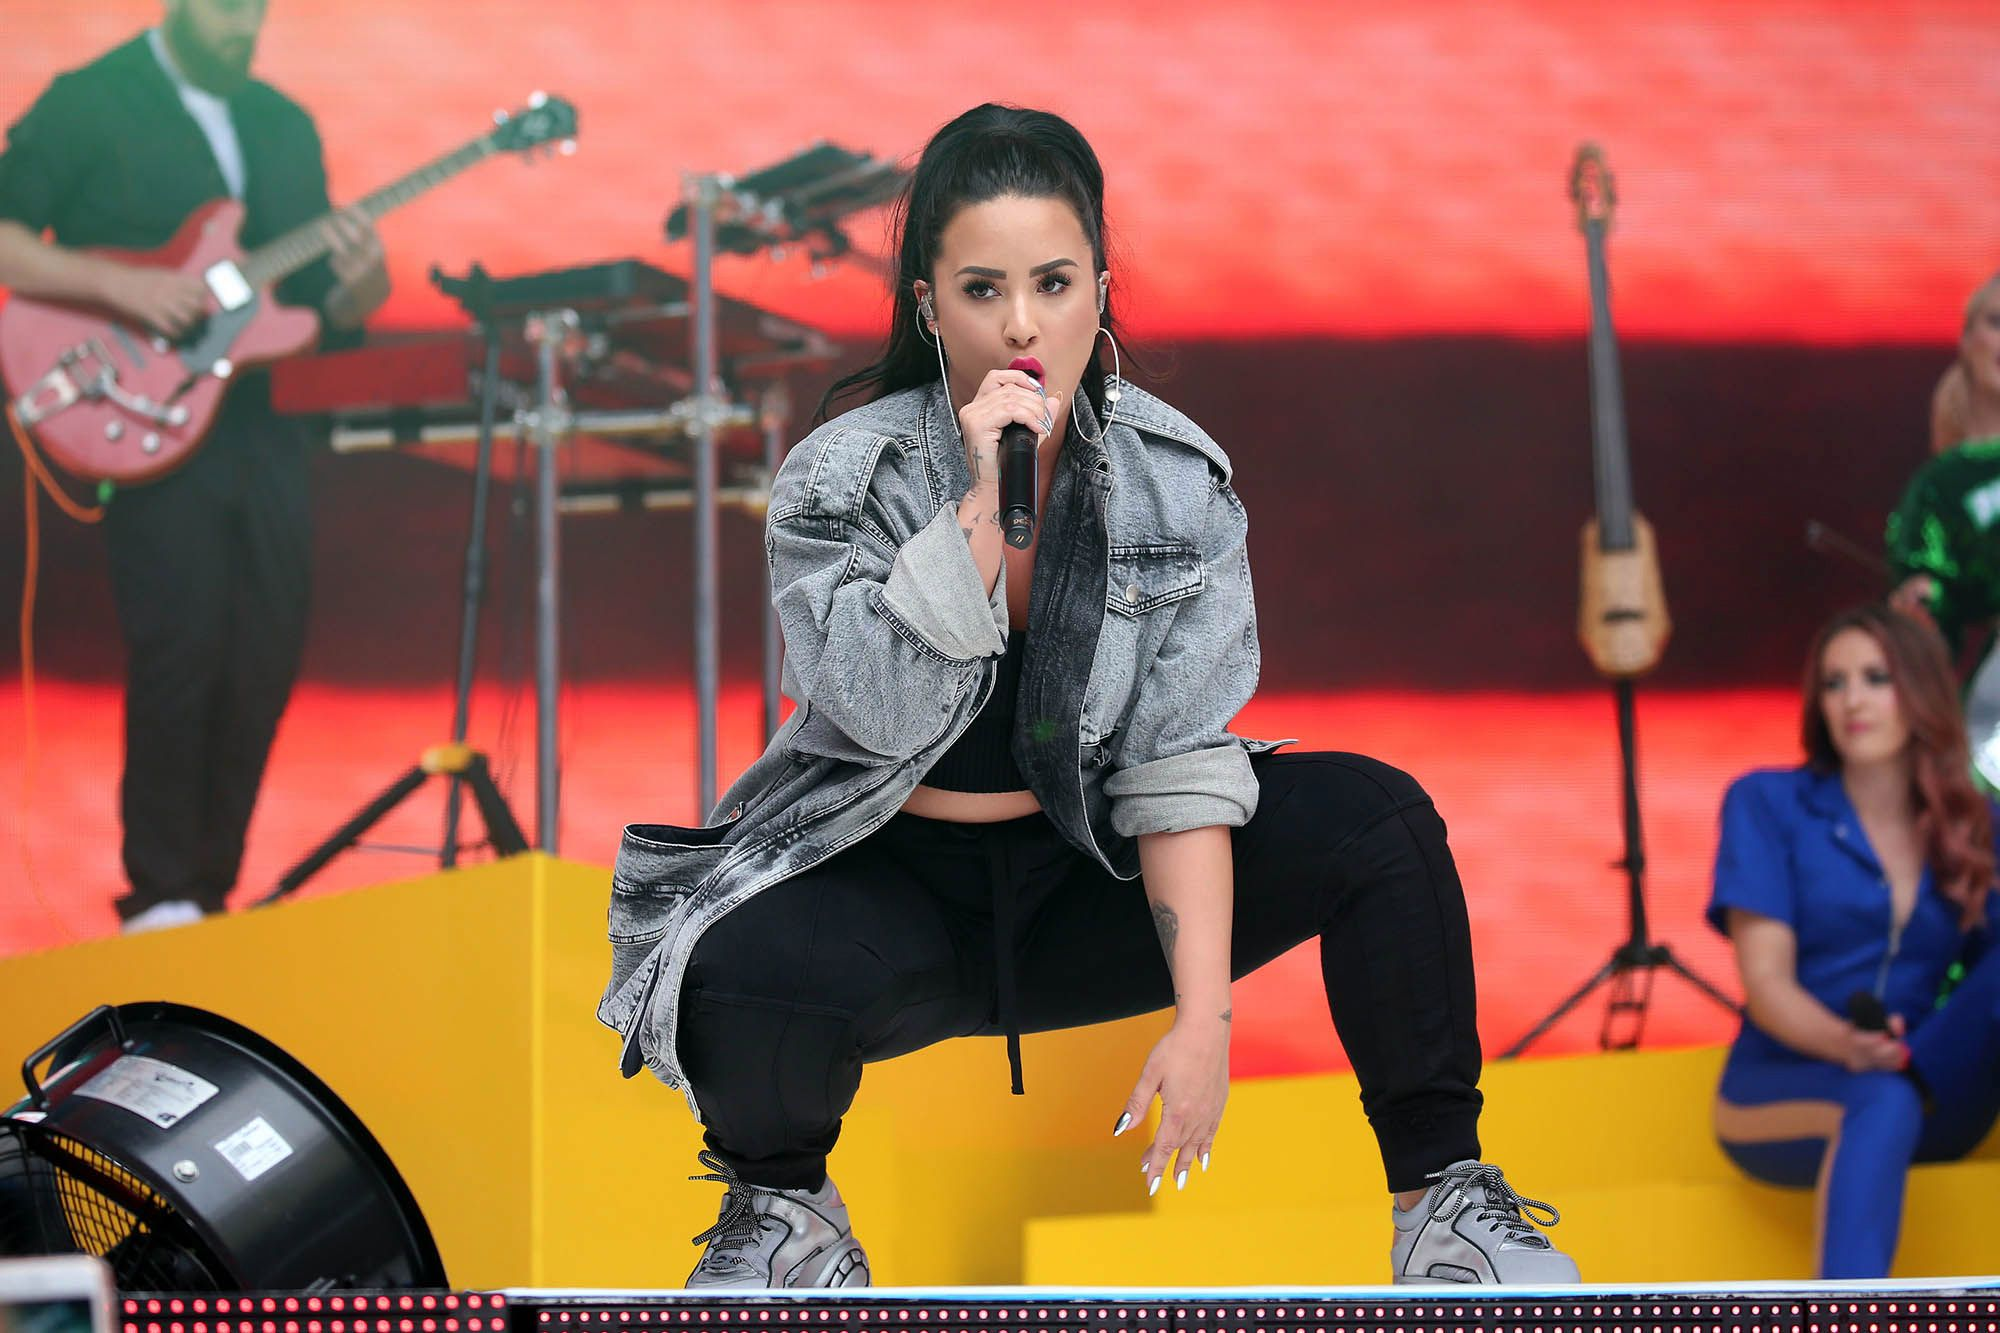 Demi Lovato Singing Wallpapers - Demi Lovato Singing Wallpapers